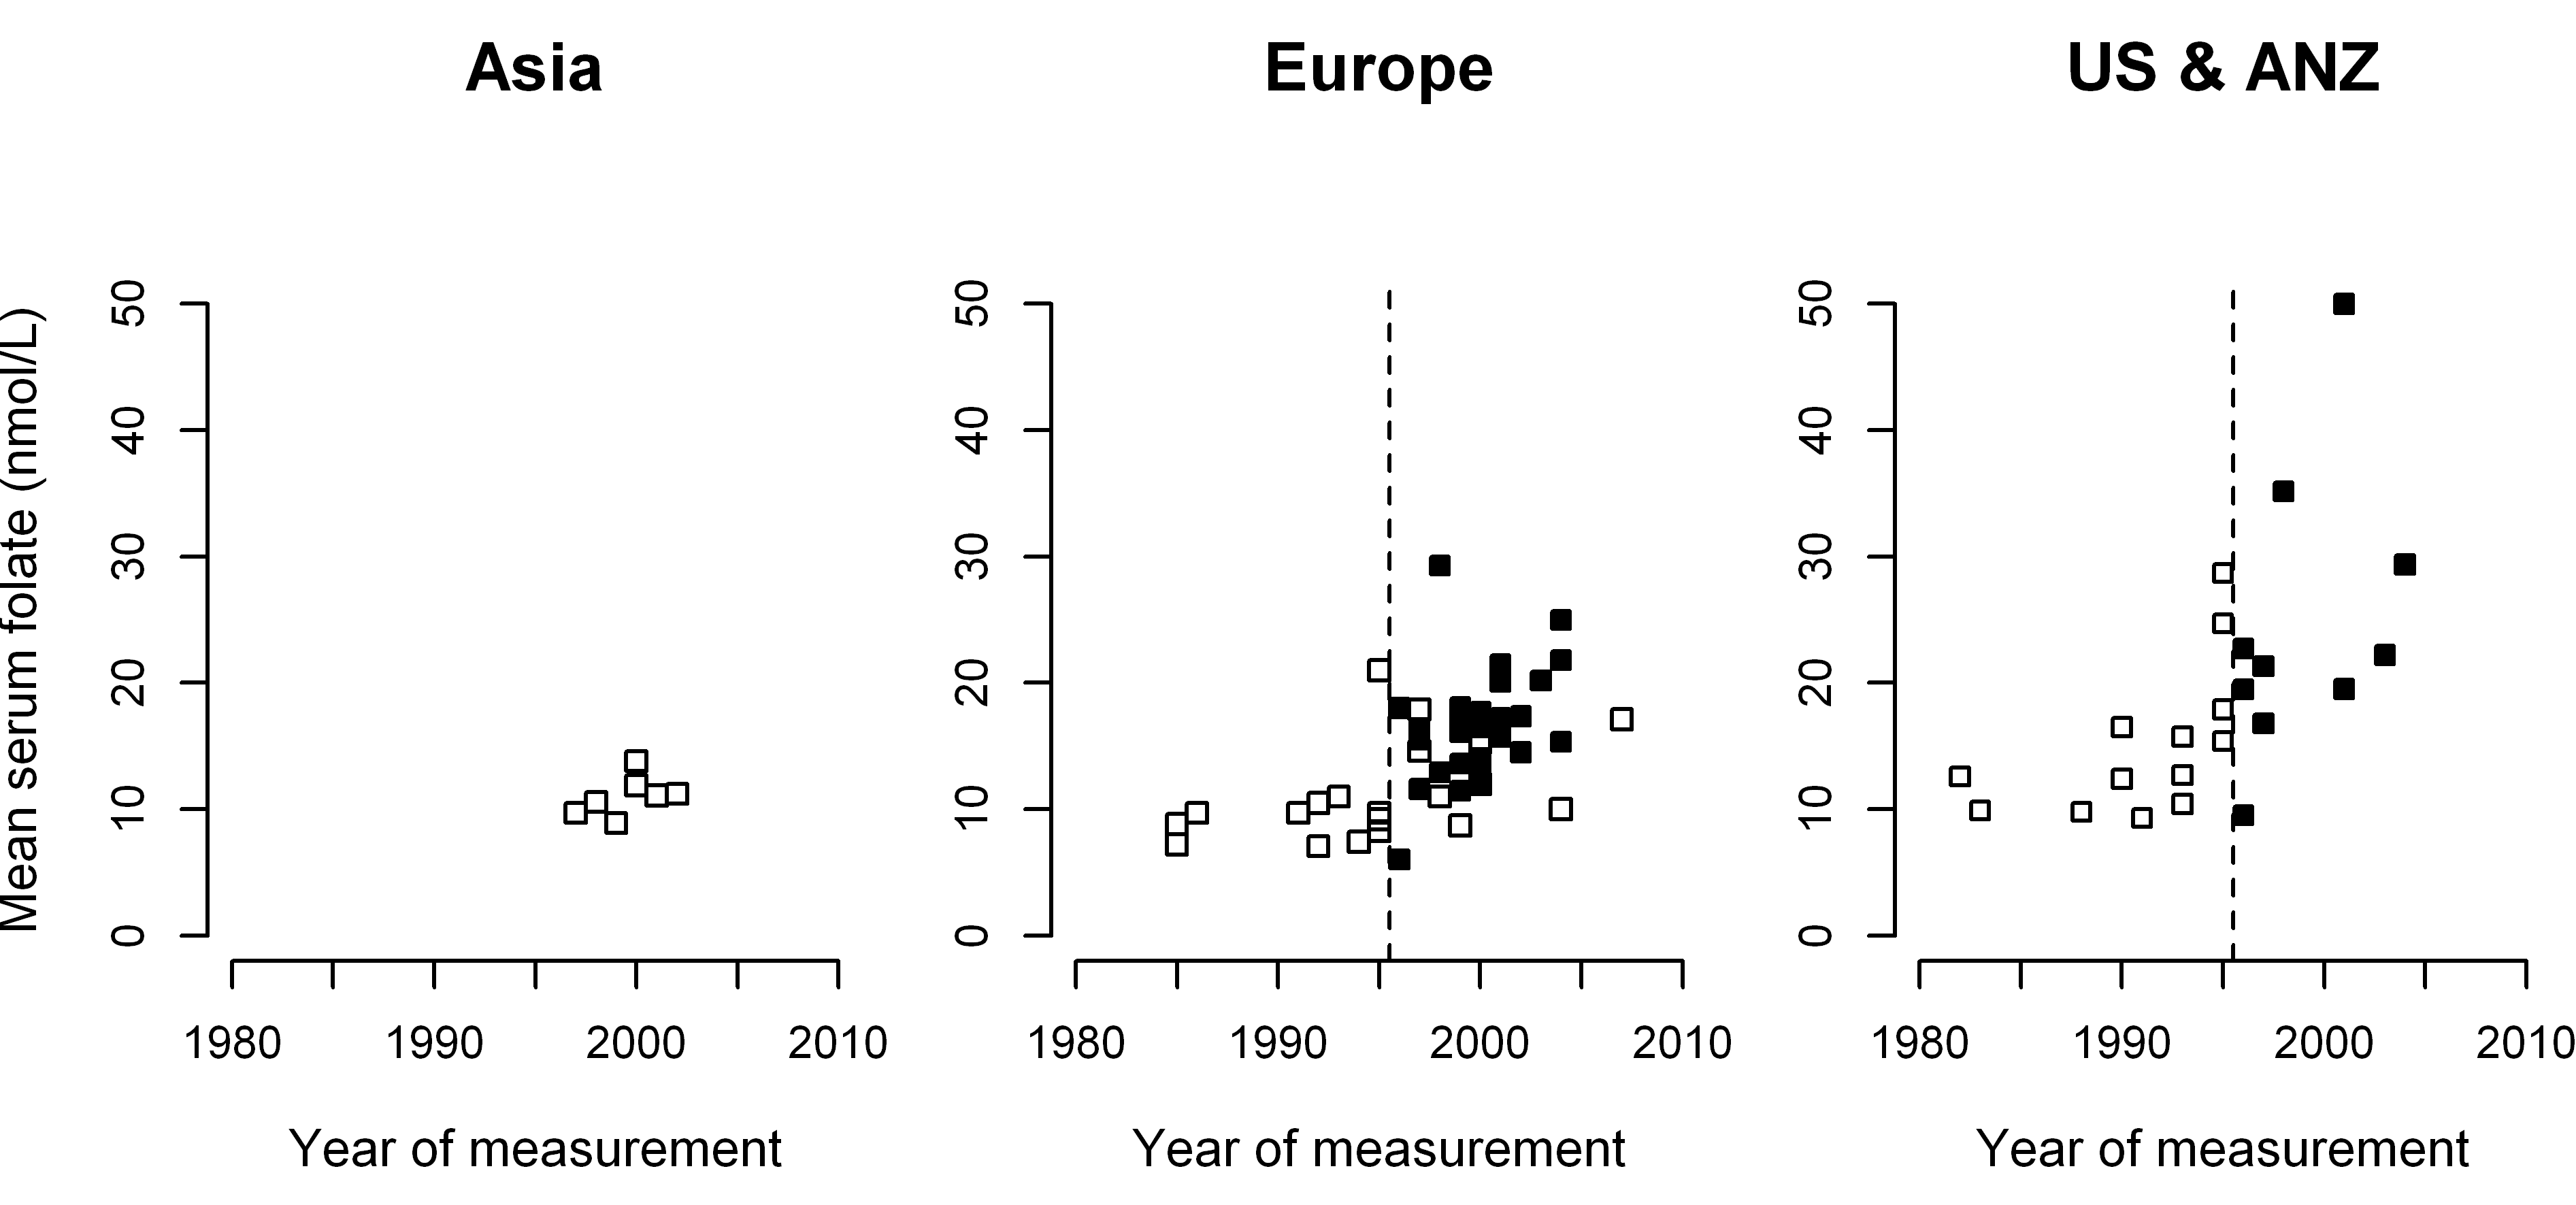 Mean serum folate concentrations in 81 population surveys, by calendar year and region.